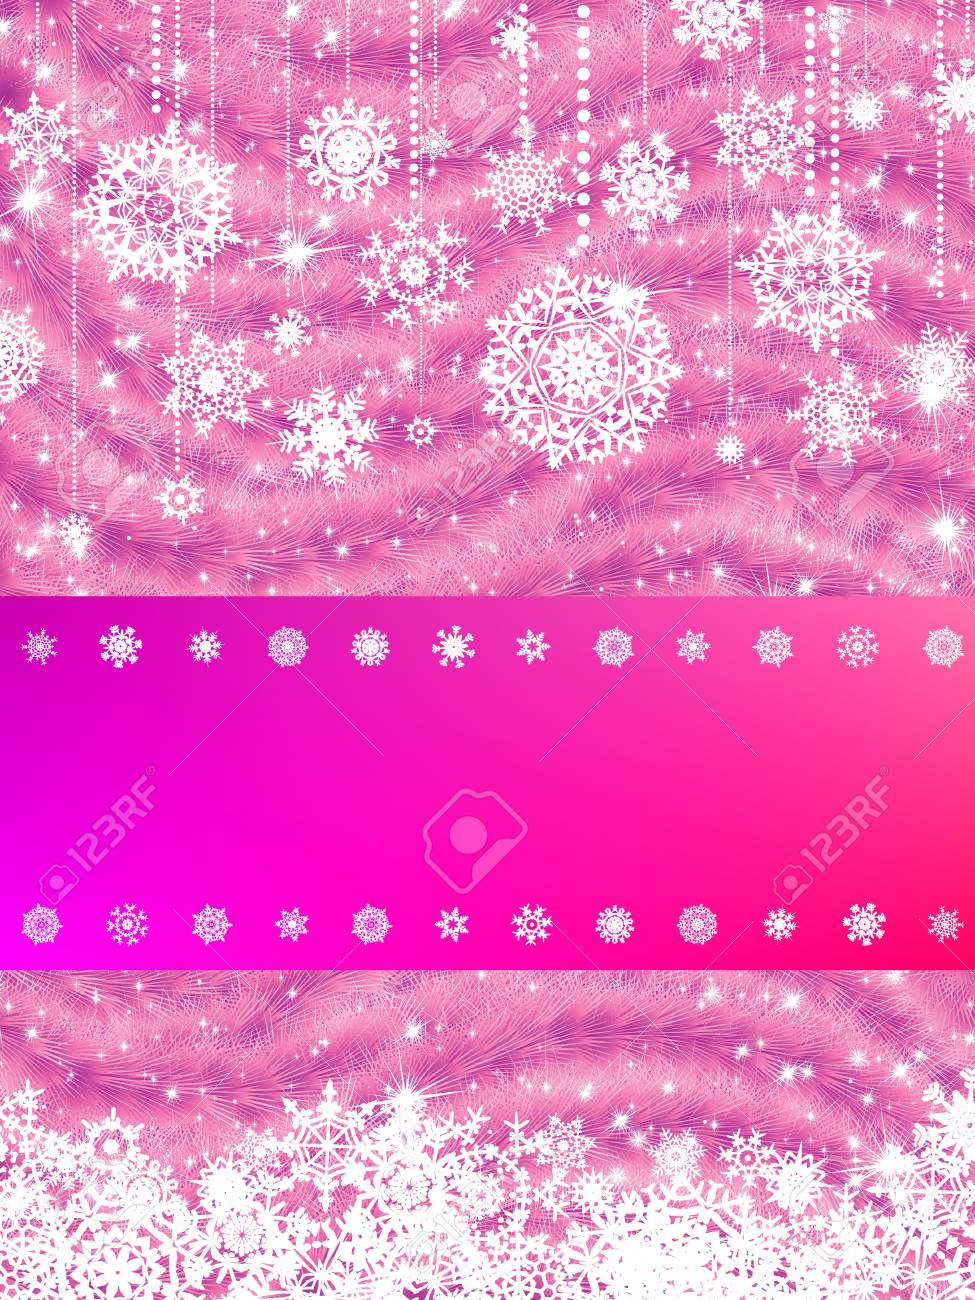 Elegant new year and cristmas card template. EPS 8 vector file included Stock Vector - 10718693